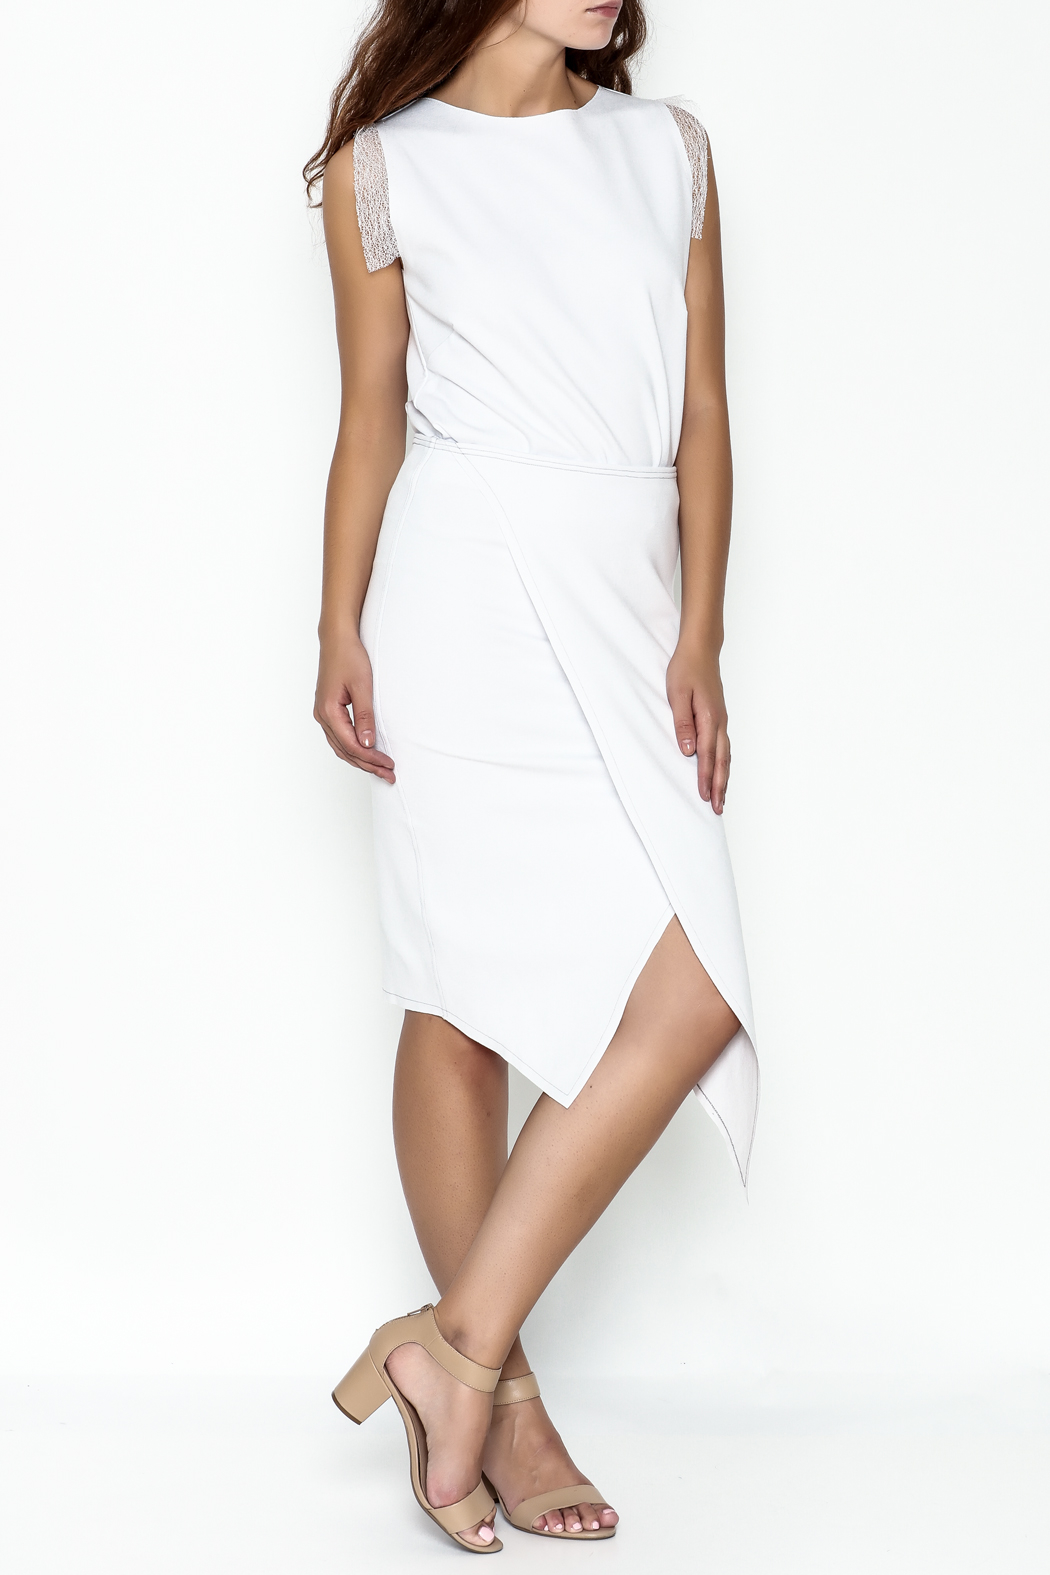 Vertex Dina Skirt - Side Cropped Image